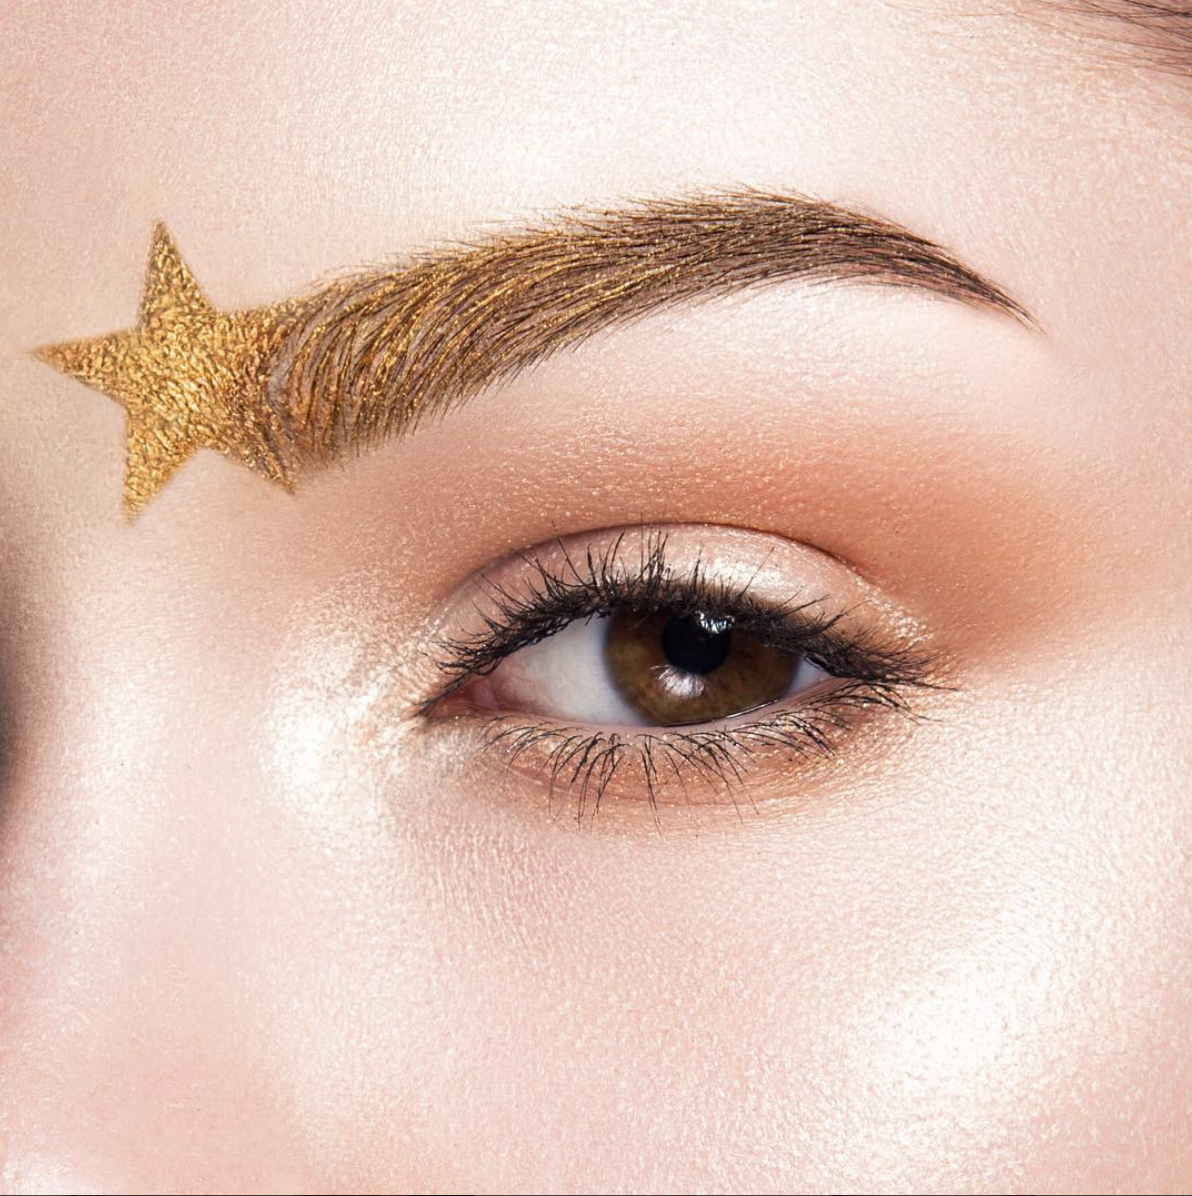 beautiful star eyebrow makeup